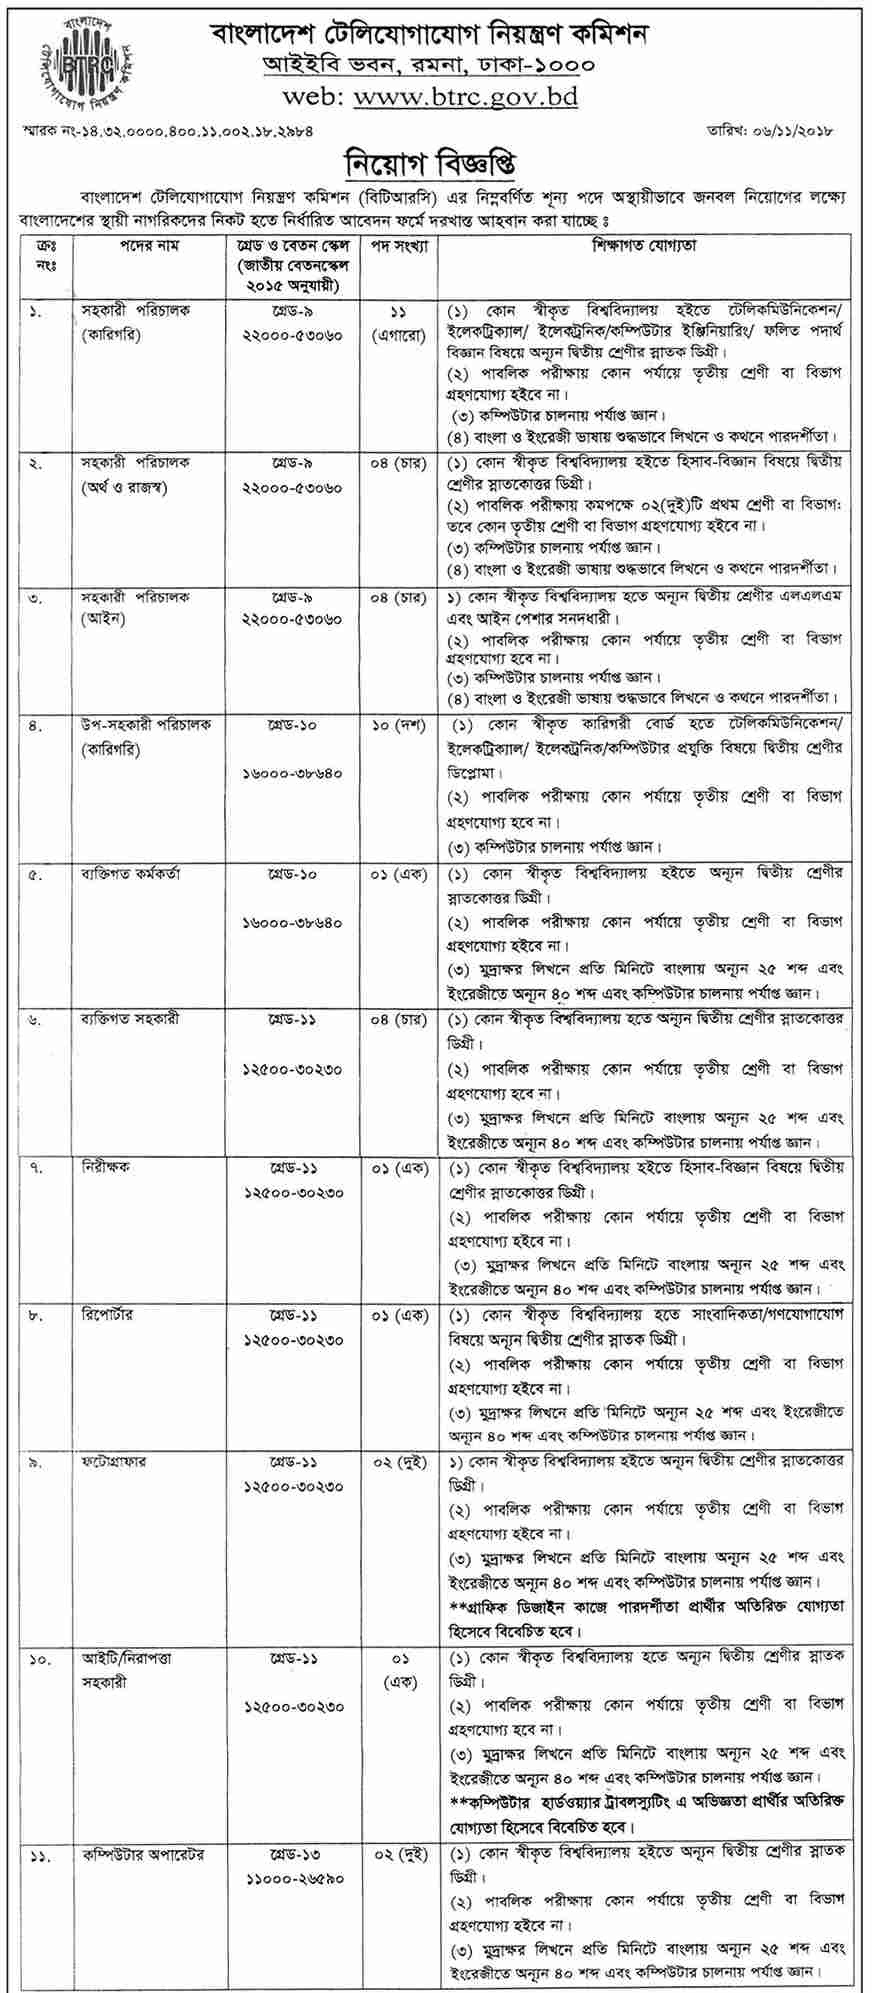 BTRC Job Circular & Application 2018 l www btrc gov bd